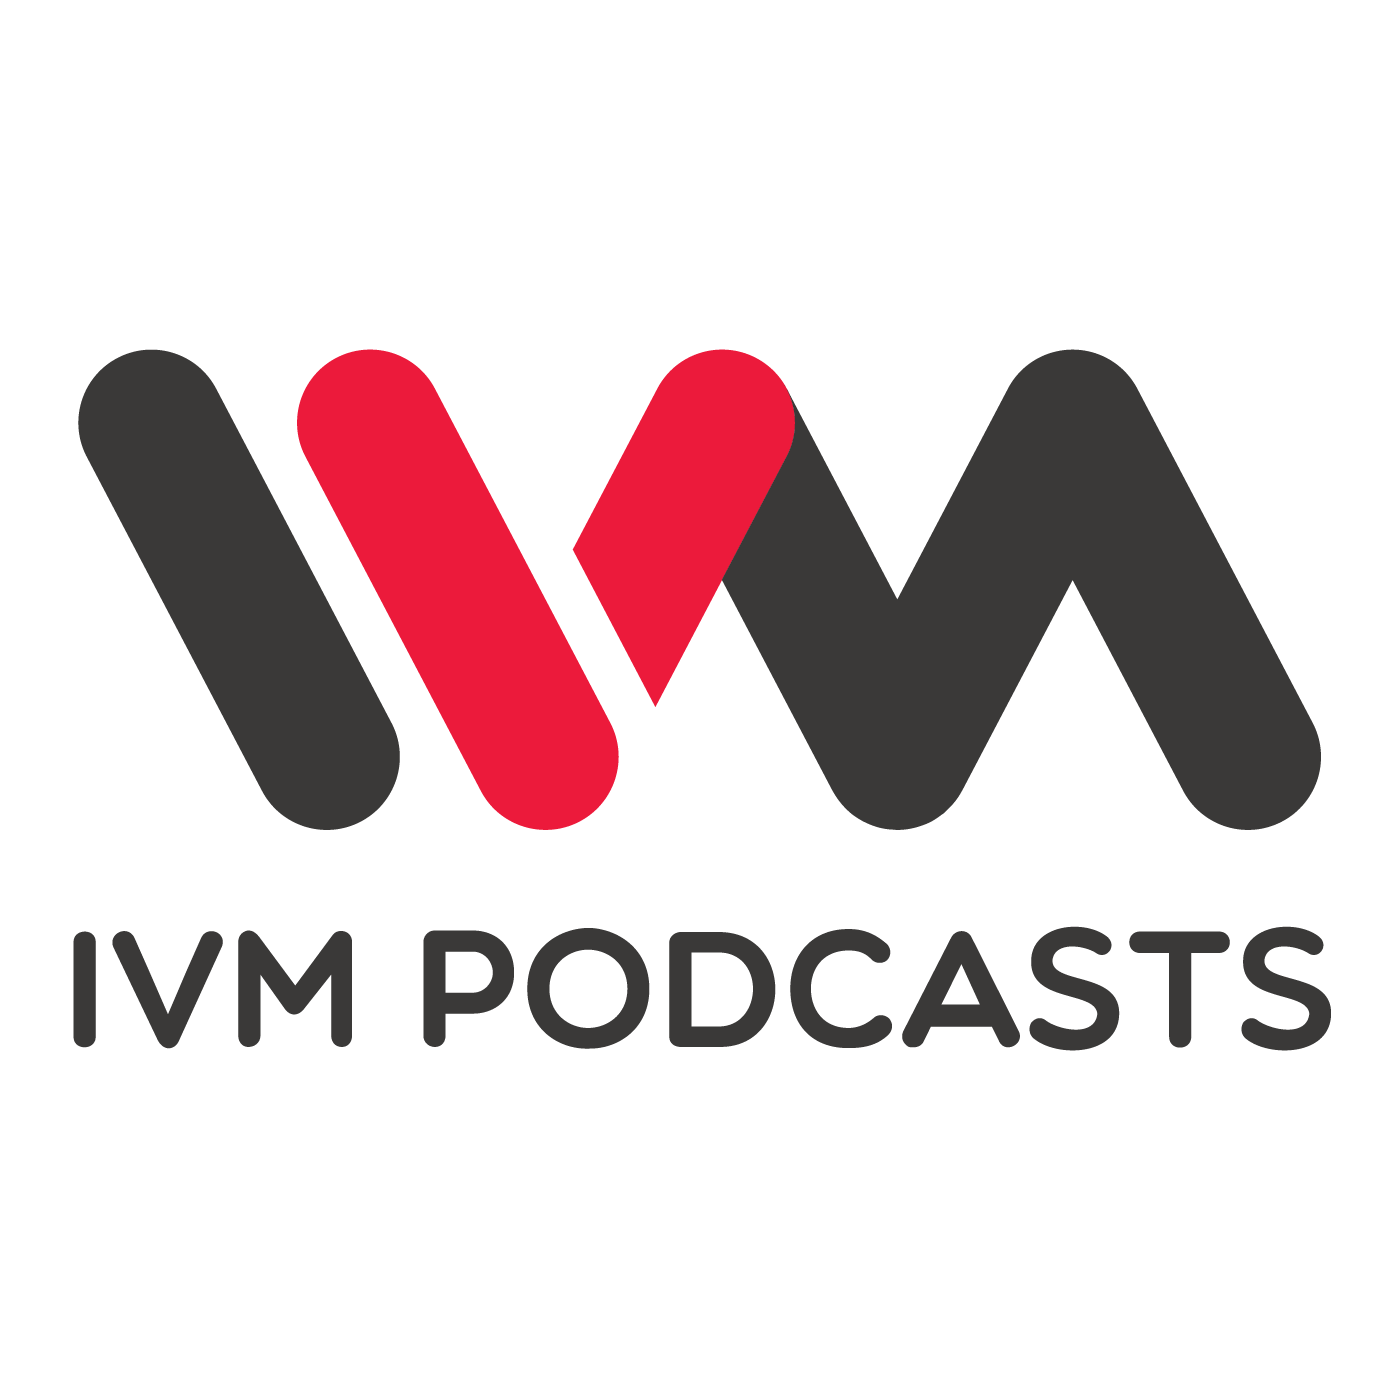 IVM Podcasts